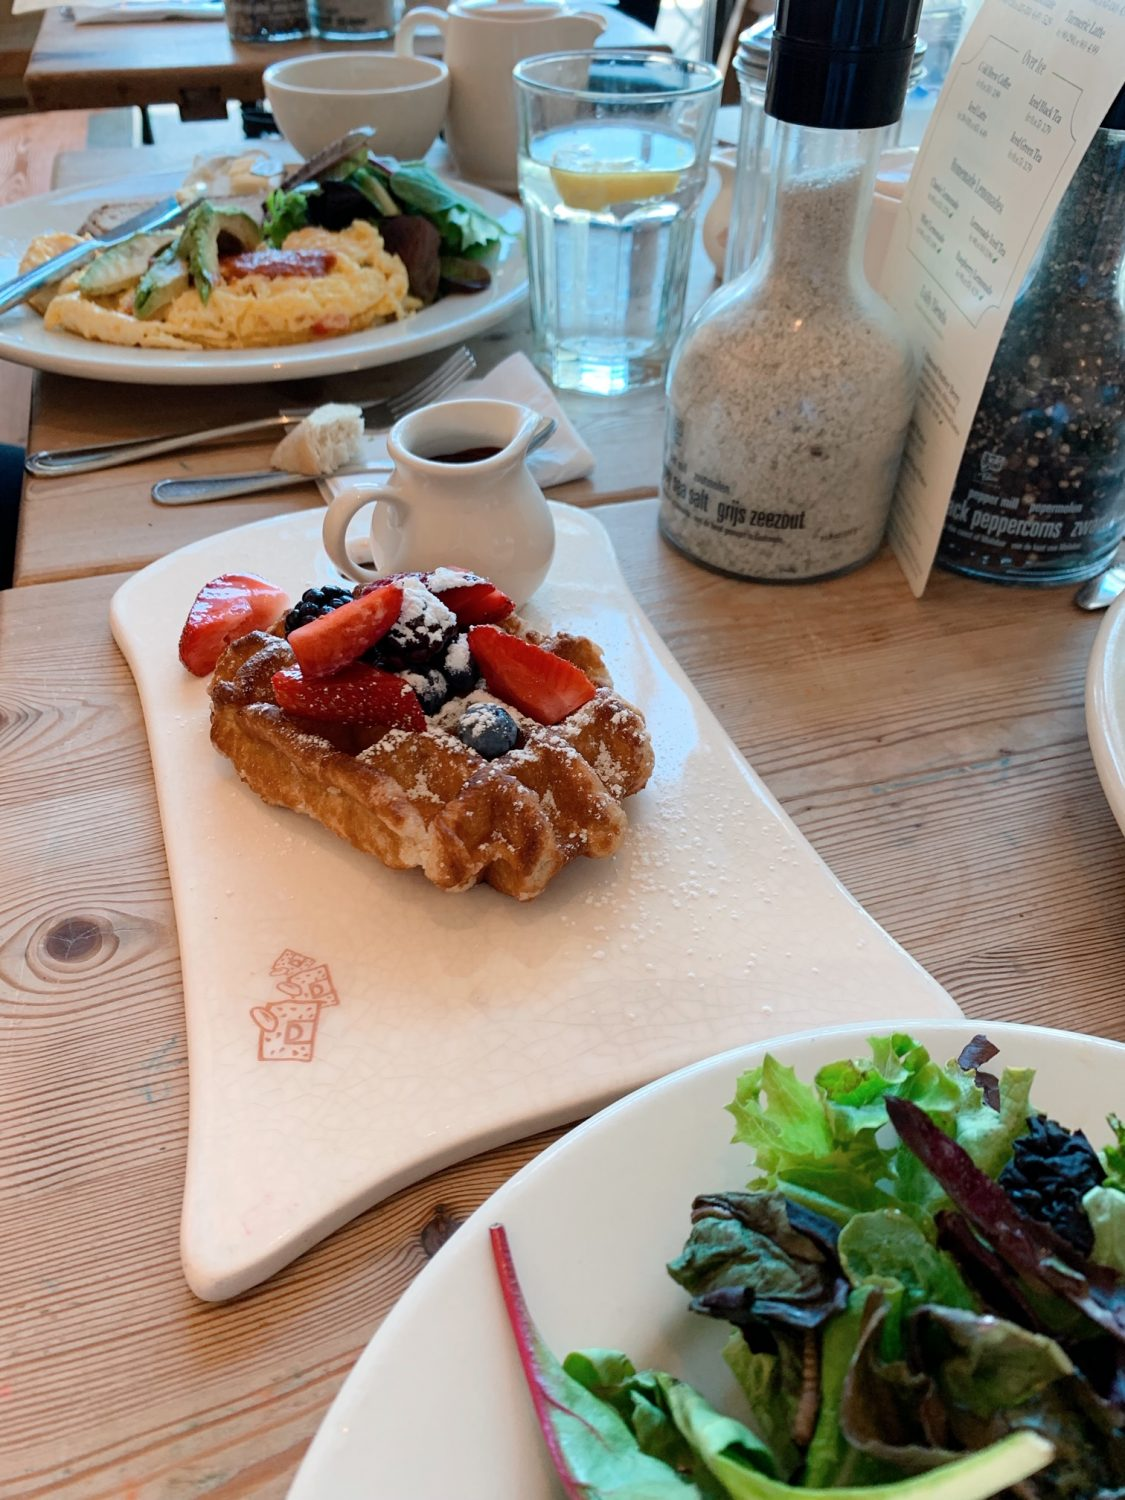 Breakfast at Le Pain Quotidien Warm Belgian Waffle